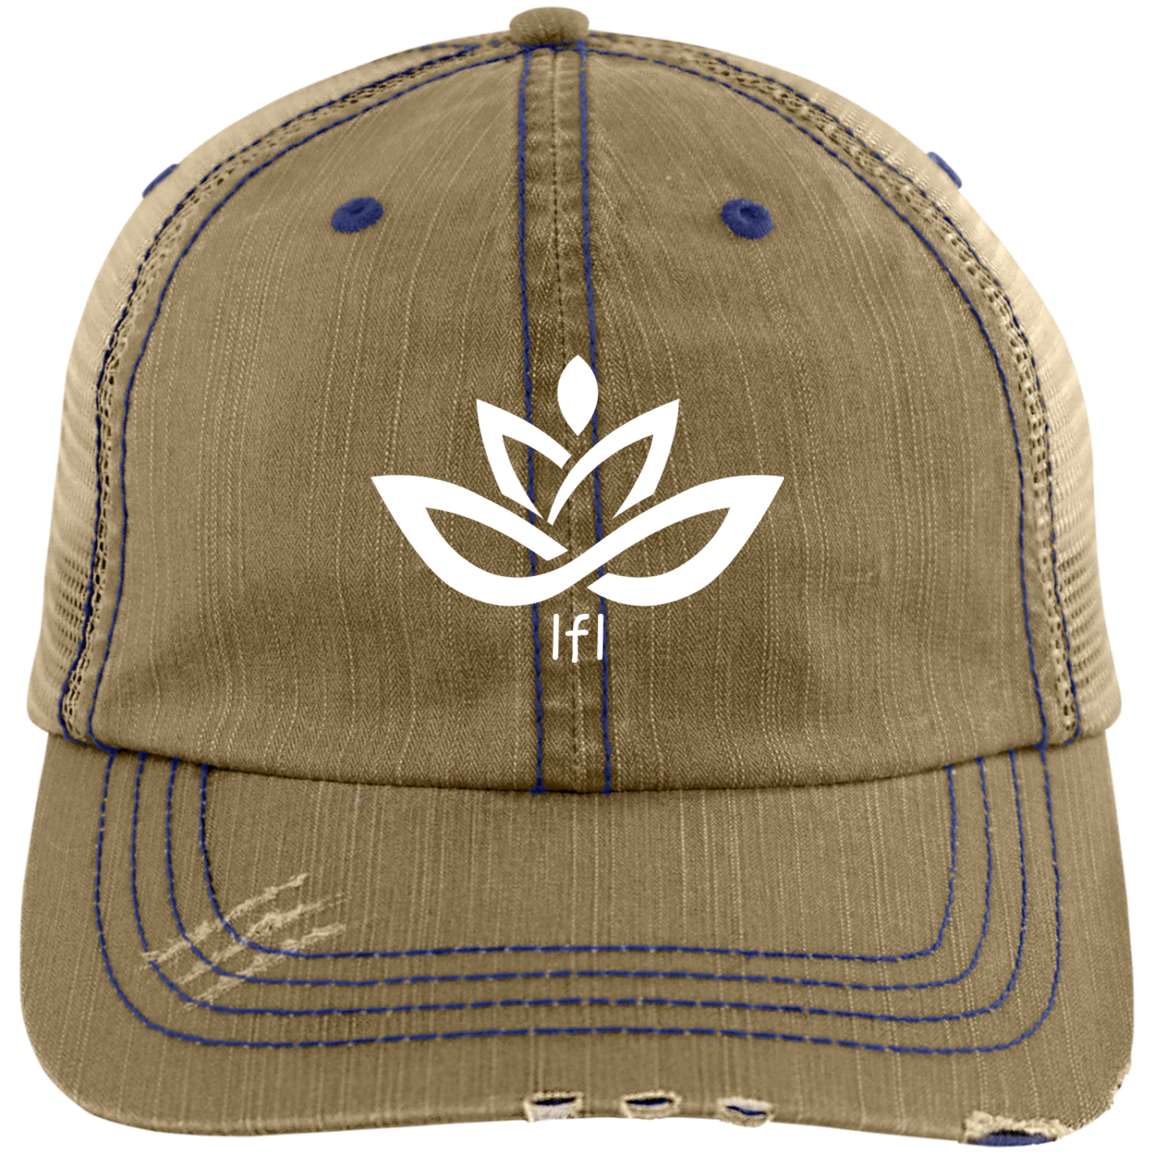 Distressed Trucker Cap- White LfL Lotus Logo